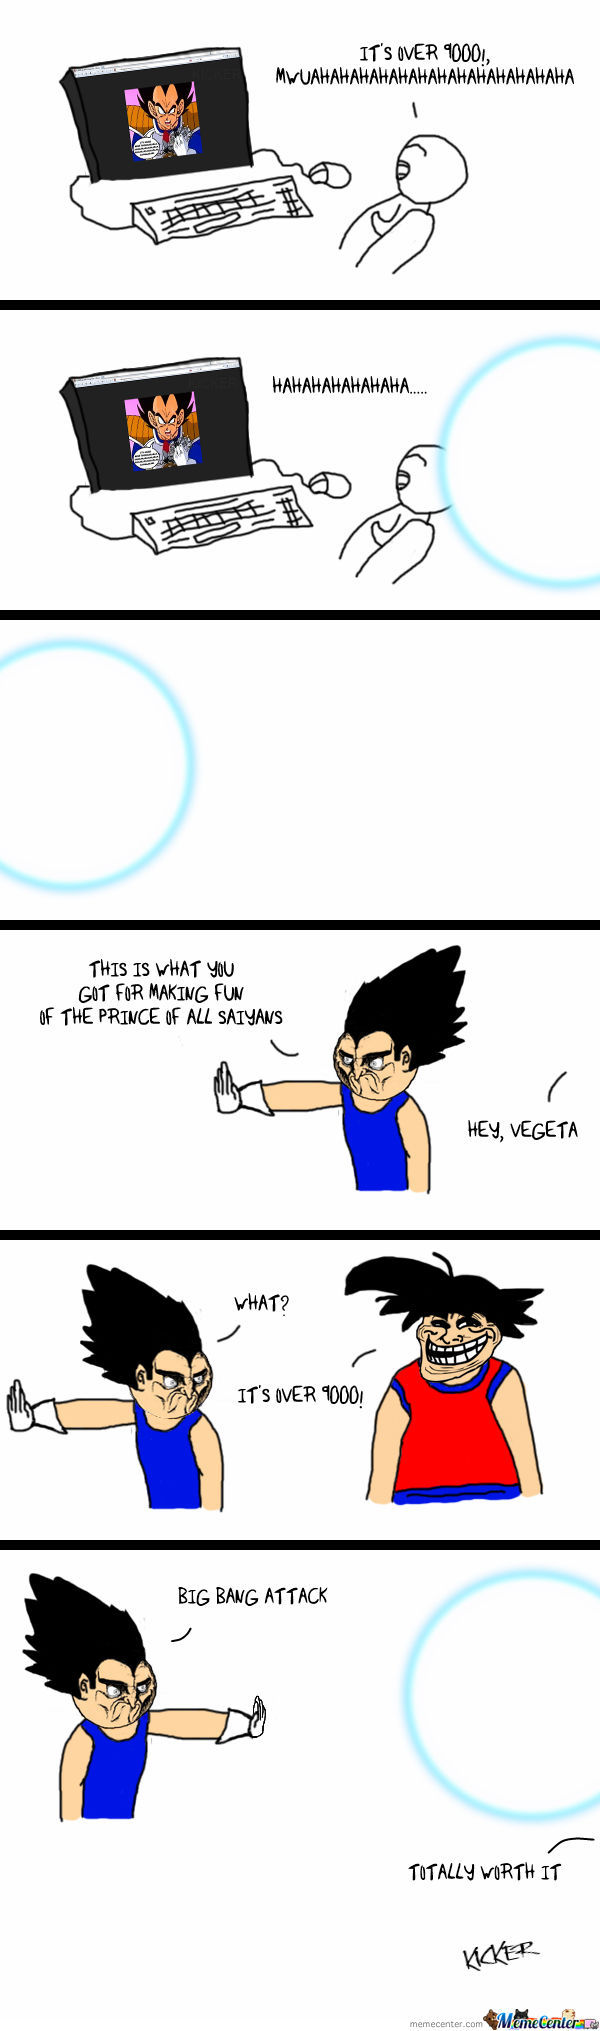 [RMX] Making Fun Of Vegeta